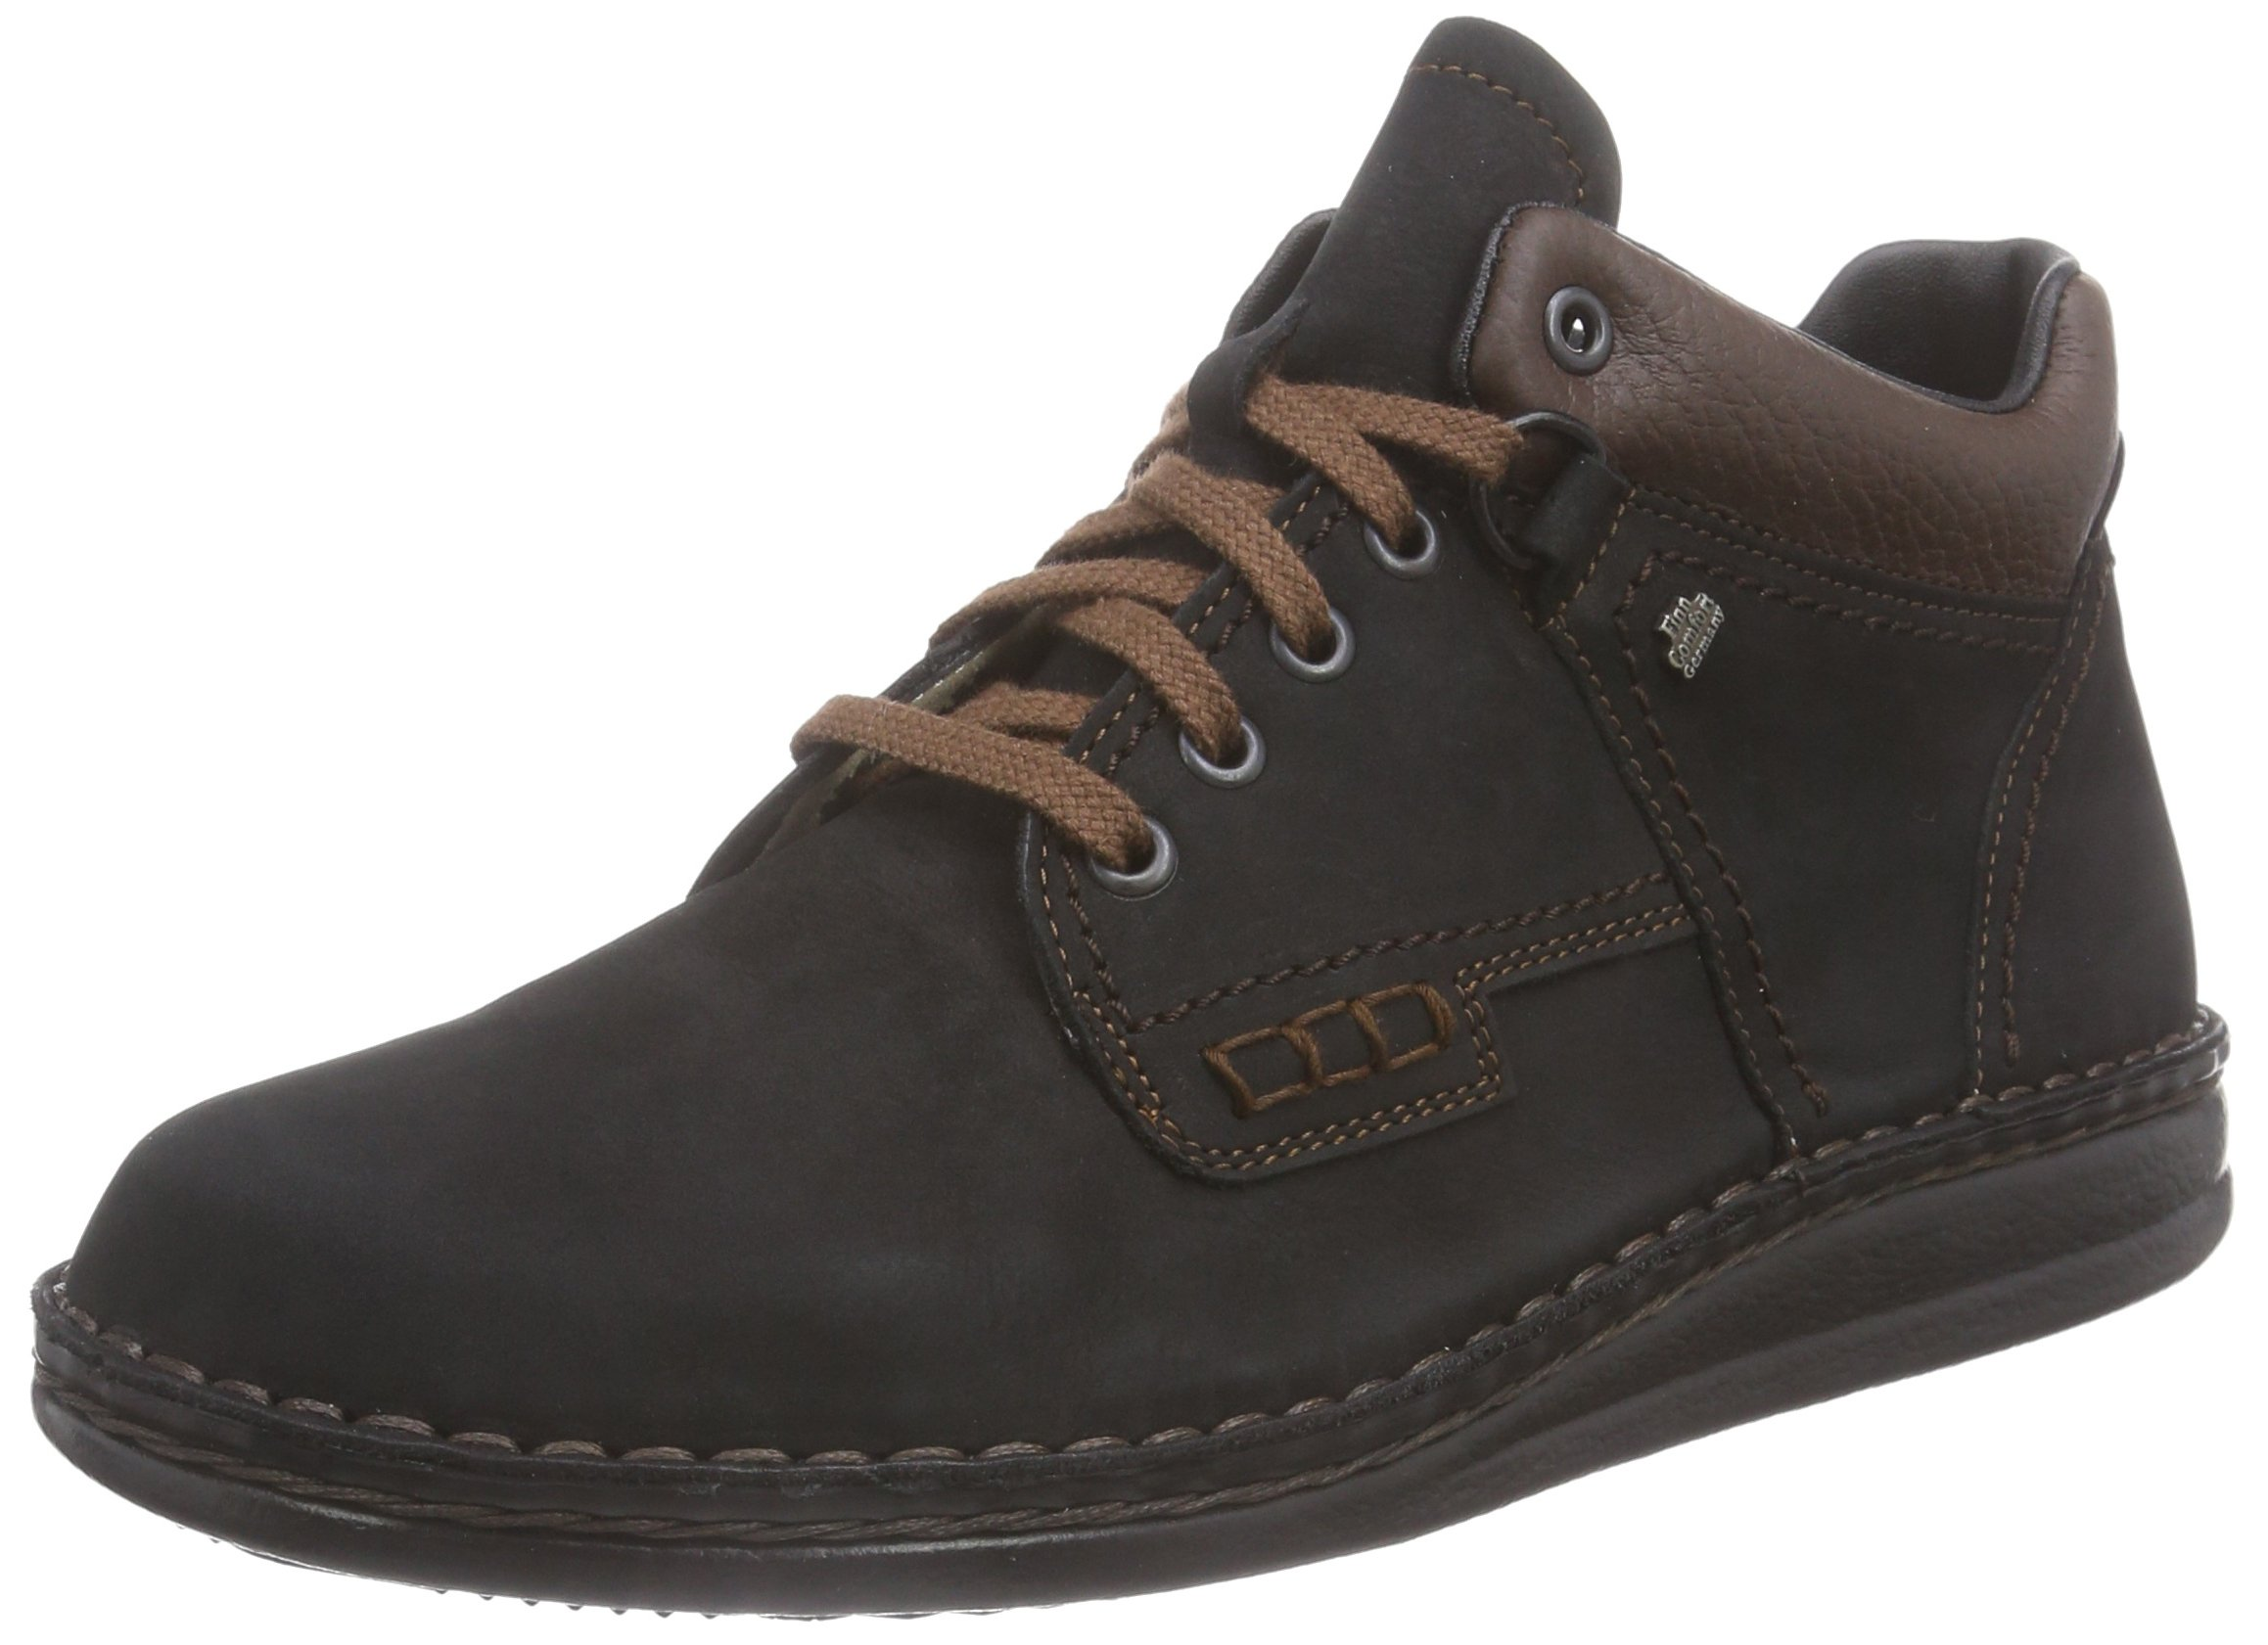 Finn Comfort Unisex Linz Boot,Black/Brown/Nevada,38 EU (US Women's 7 M)